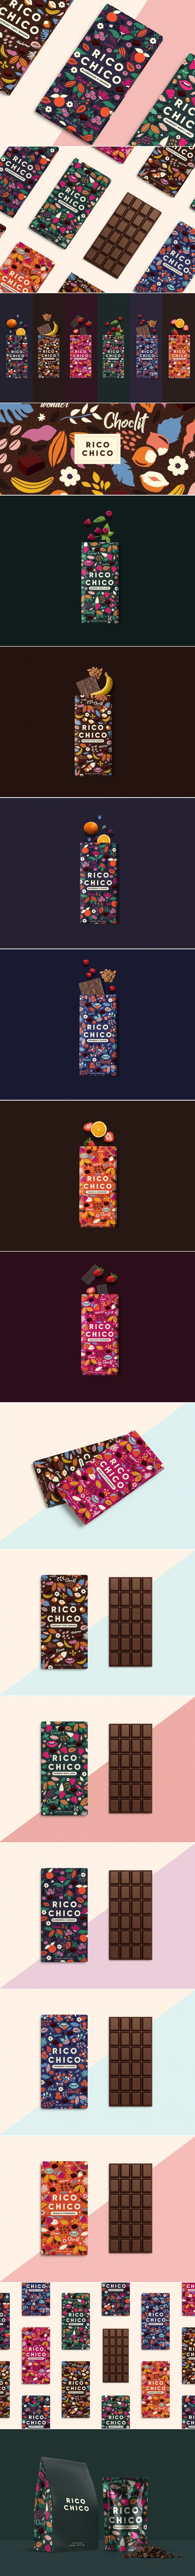 Rico Chico Chocolate Comes With Illustrations as Bold as The Flavors Themselves — The Dieline | Packaging & Branding Design & Innovation News